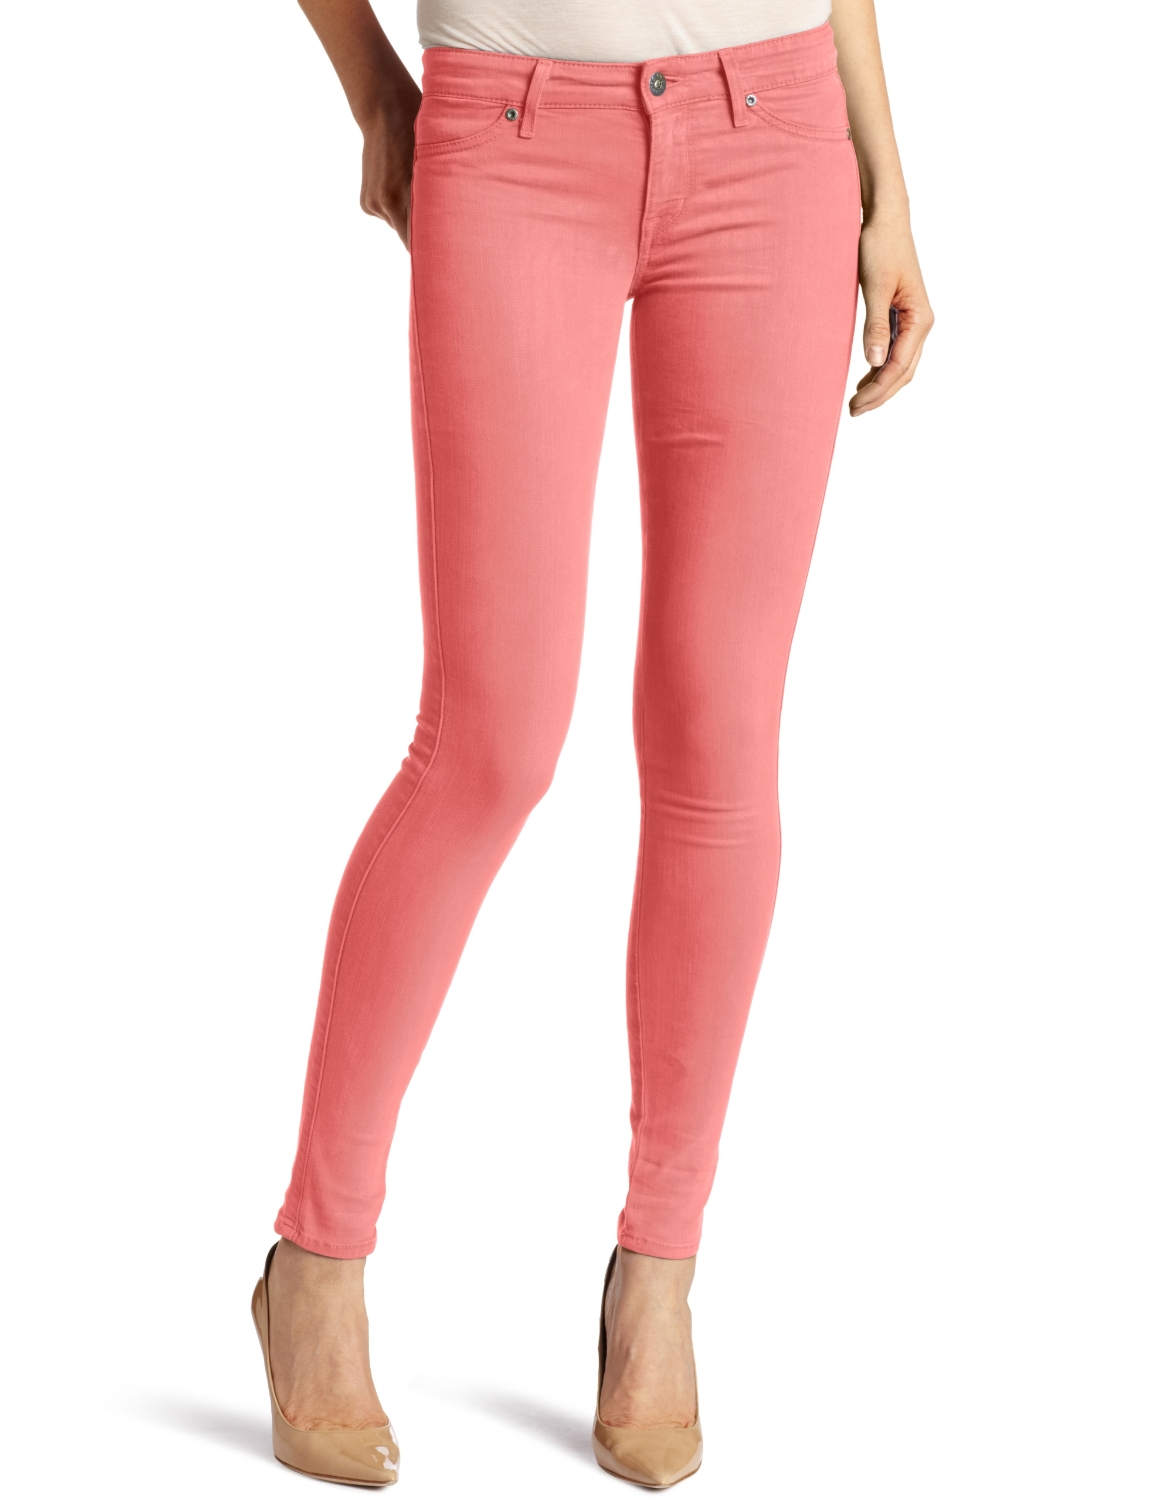 Free shipping and returns on Women's Colorful Jeans & Denim at shopnow-vjpmehag.cf